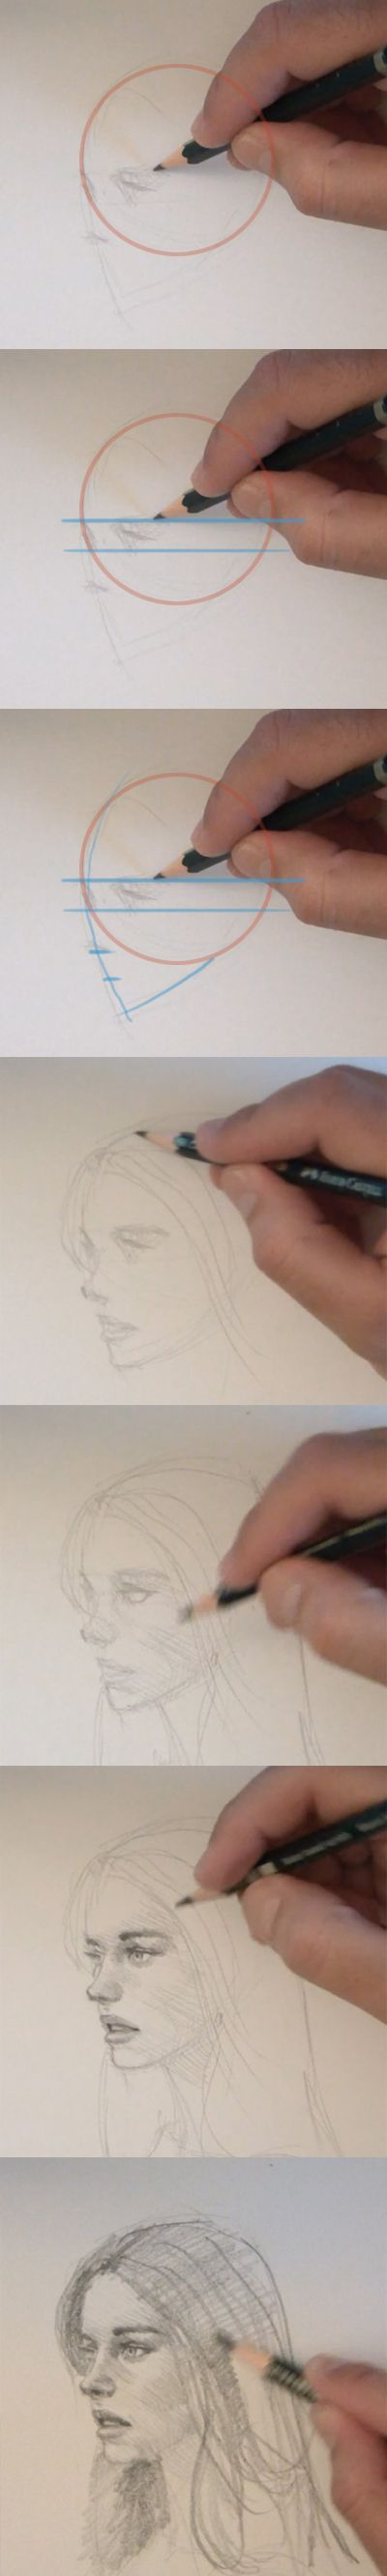 learn to draw people face Drawing people face side view